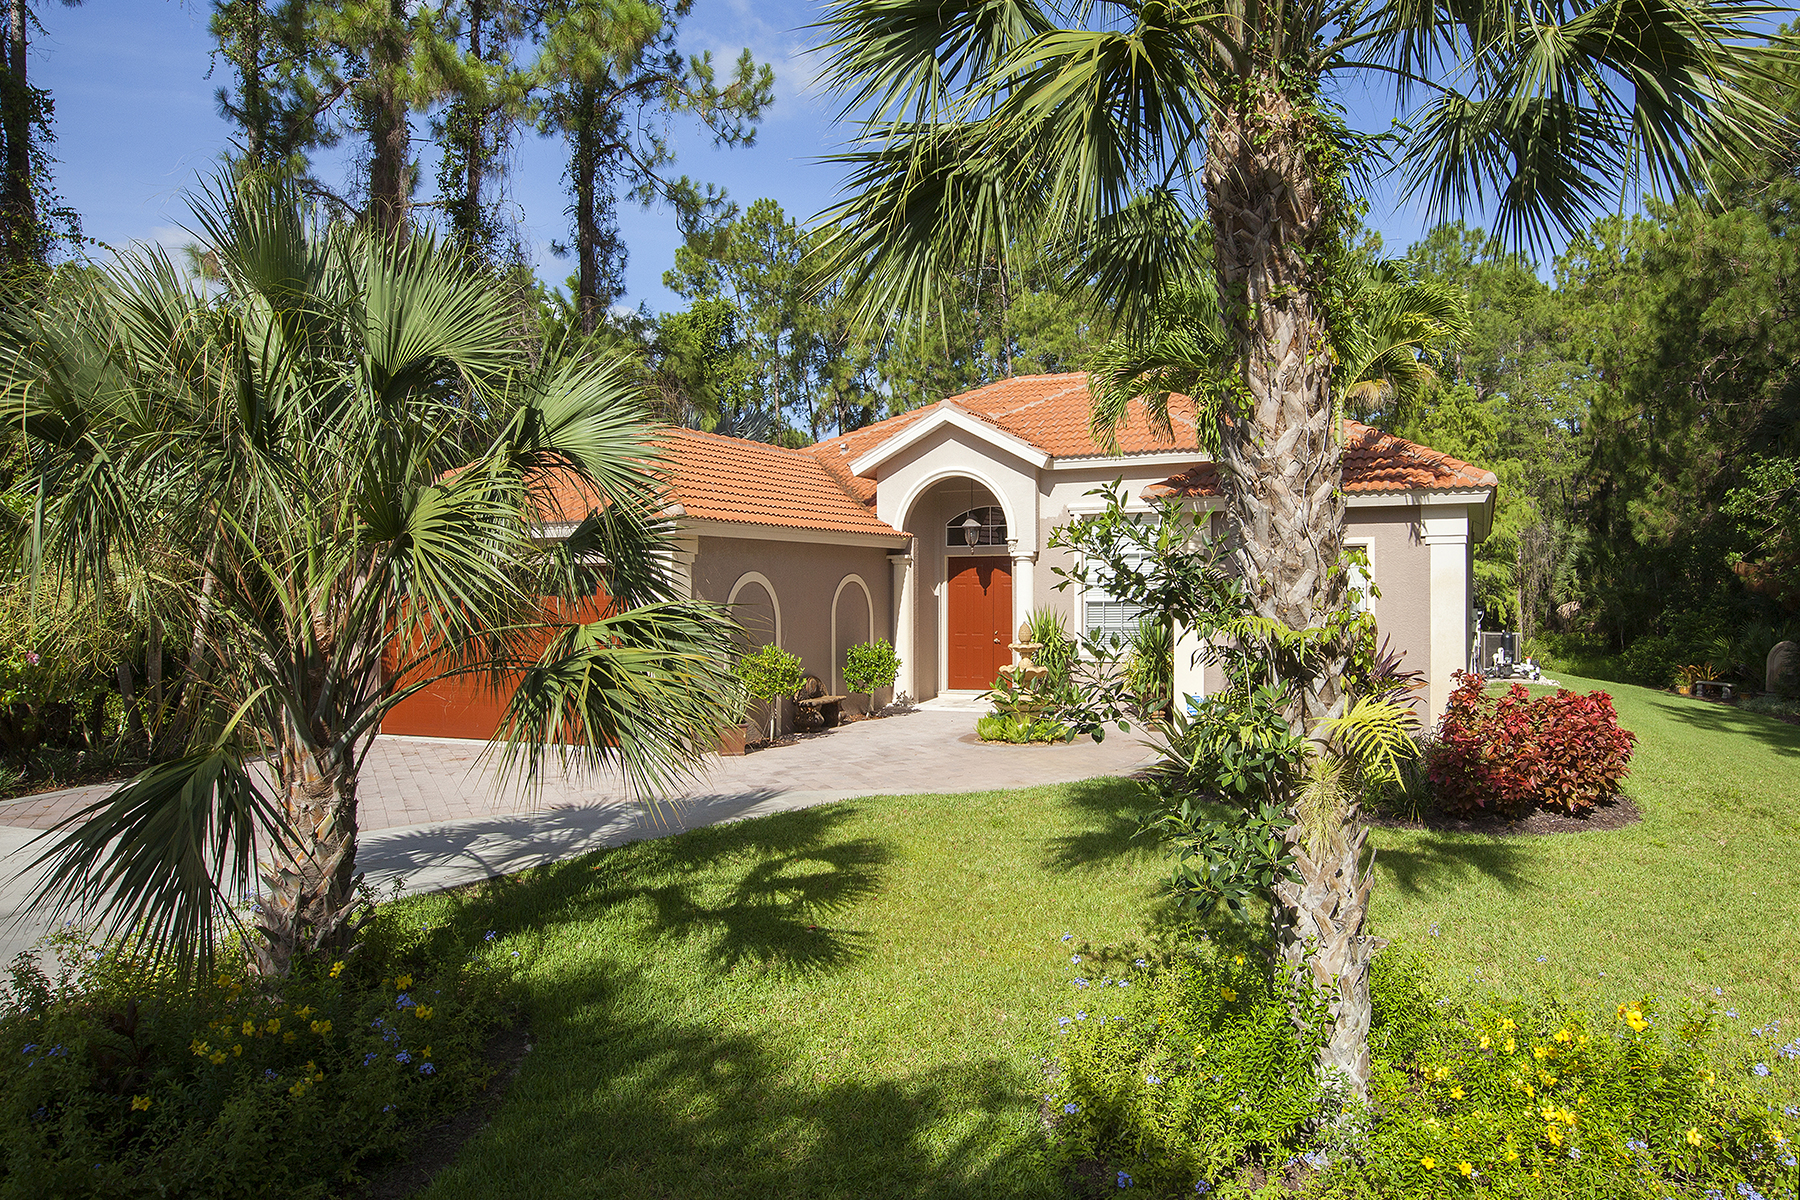 Single Family Home for Sale at GOLDEN GATE ESTATES 13995 Collier Blvd Naples, Florida 34119 United States